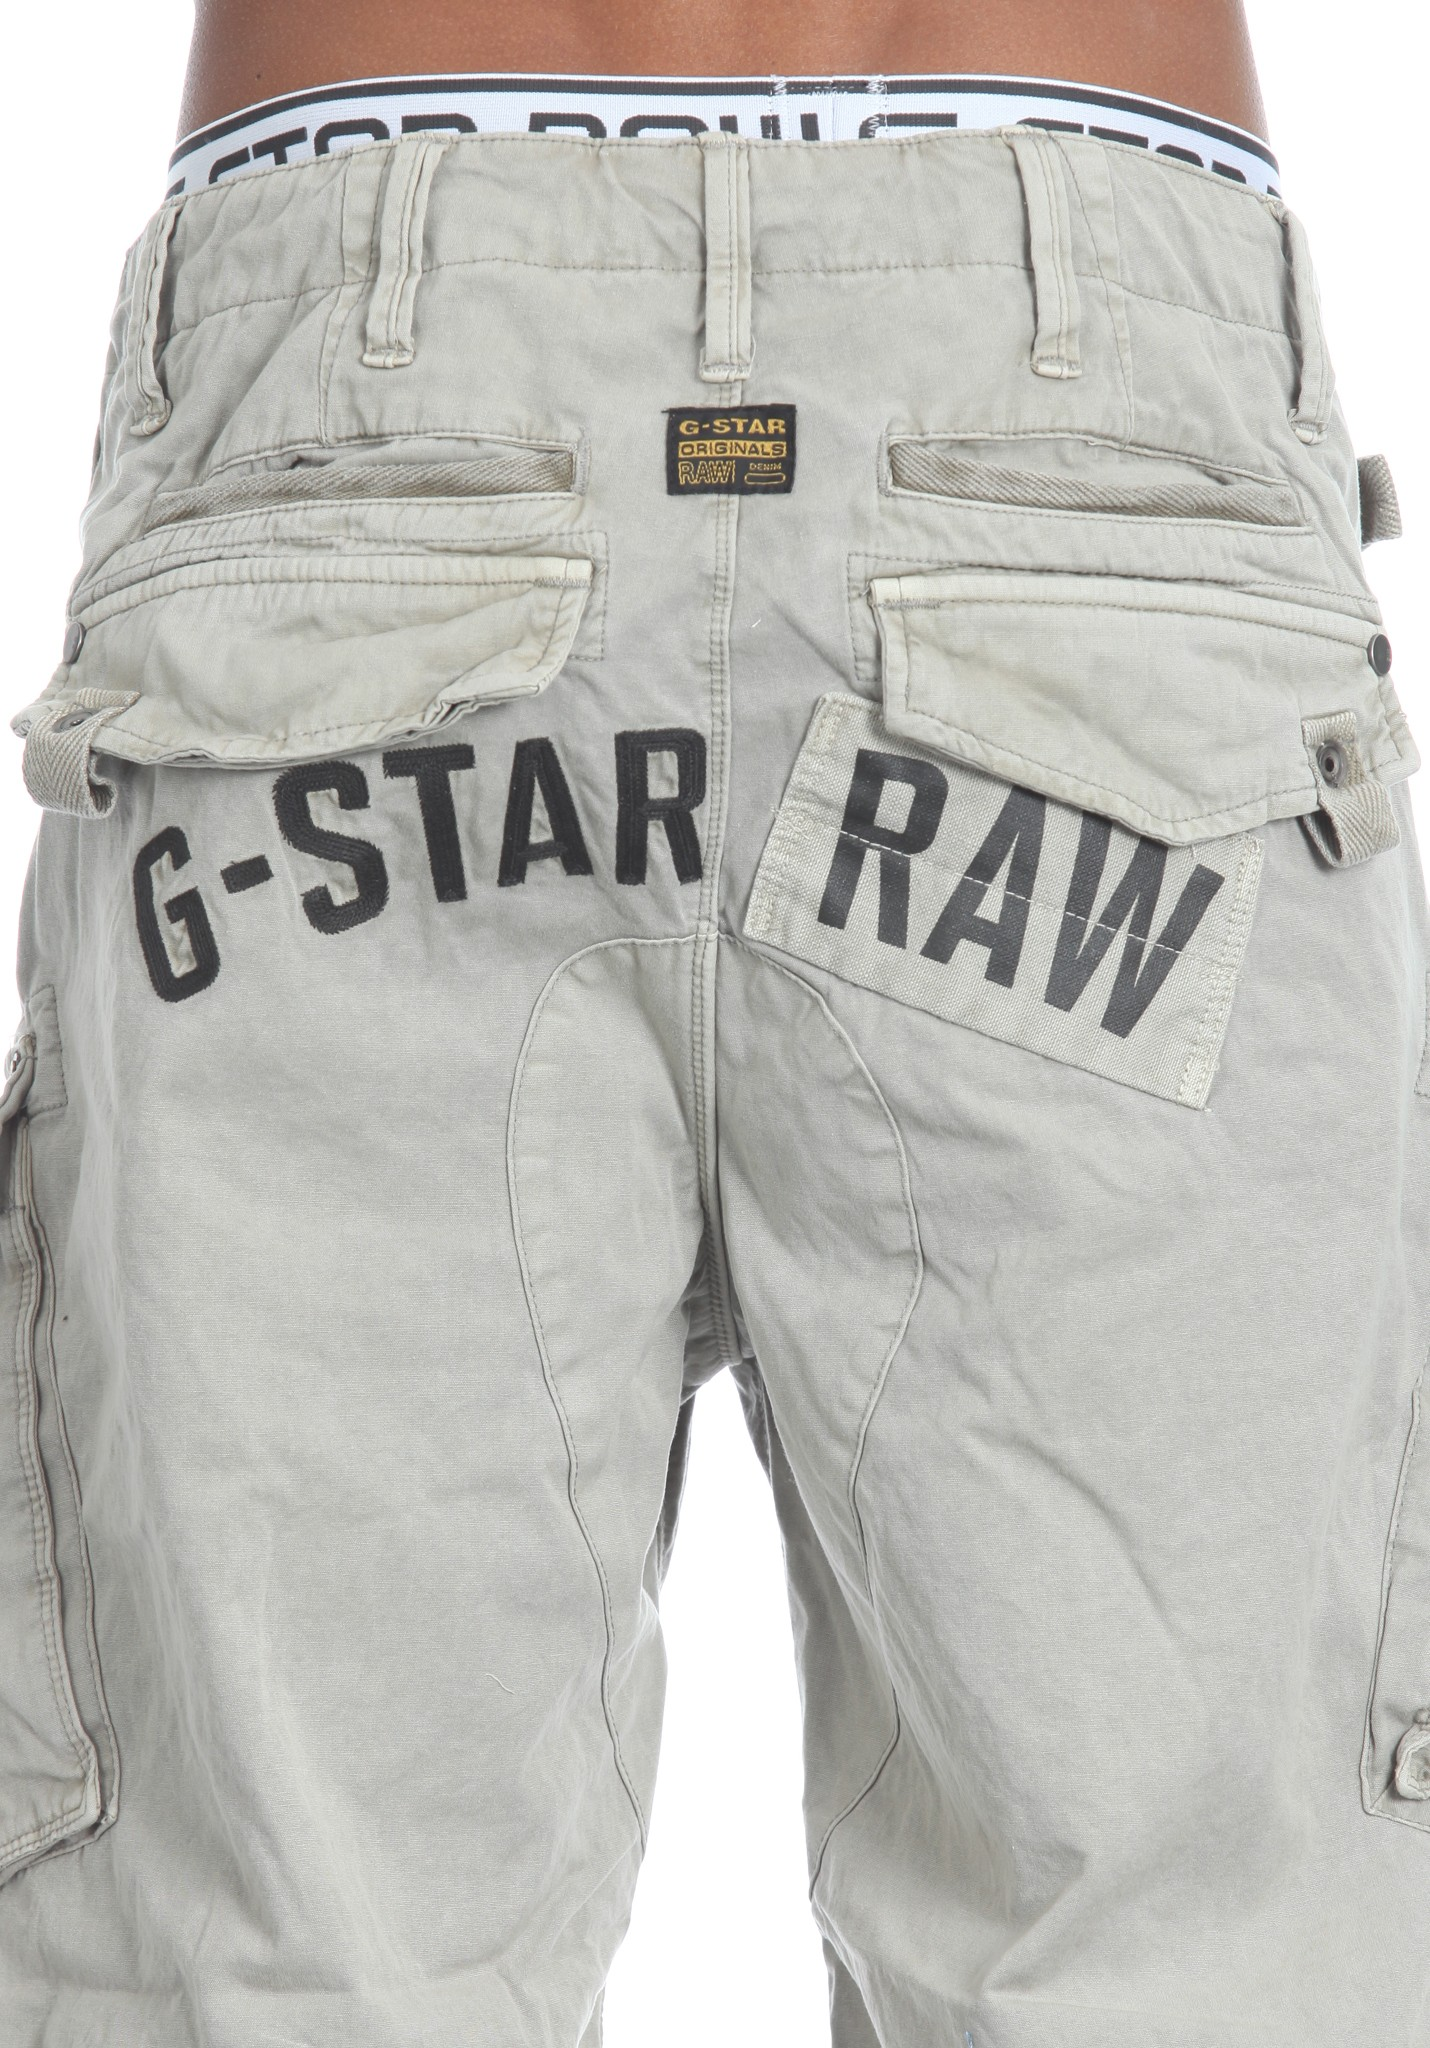 g star hosen herren star raw mig pt herren cargo hose vintage tapered jeans ebay spannende g. Black Bedroom Furniture Sets. Home Design Ideas